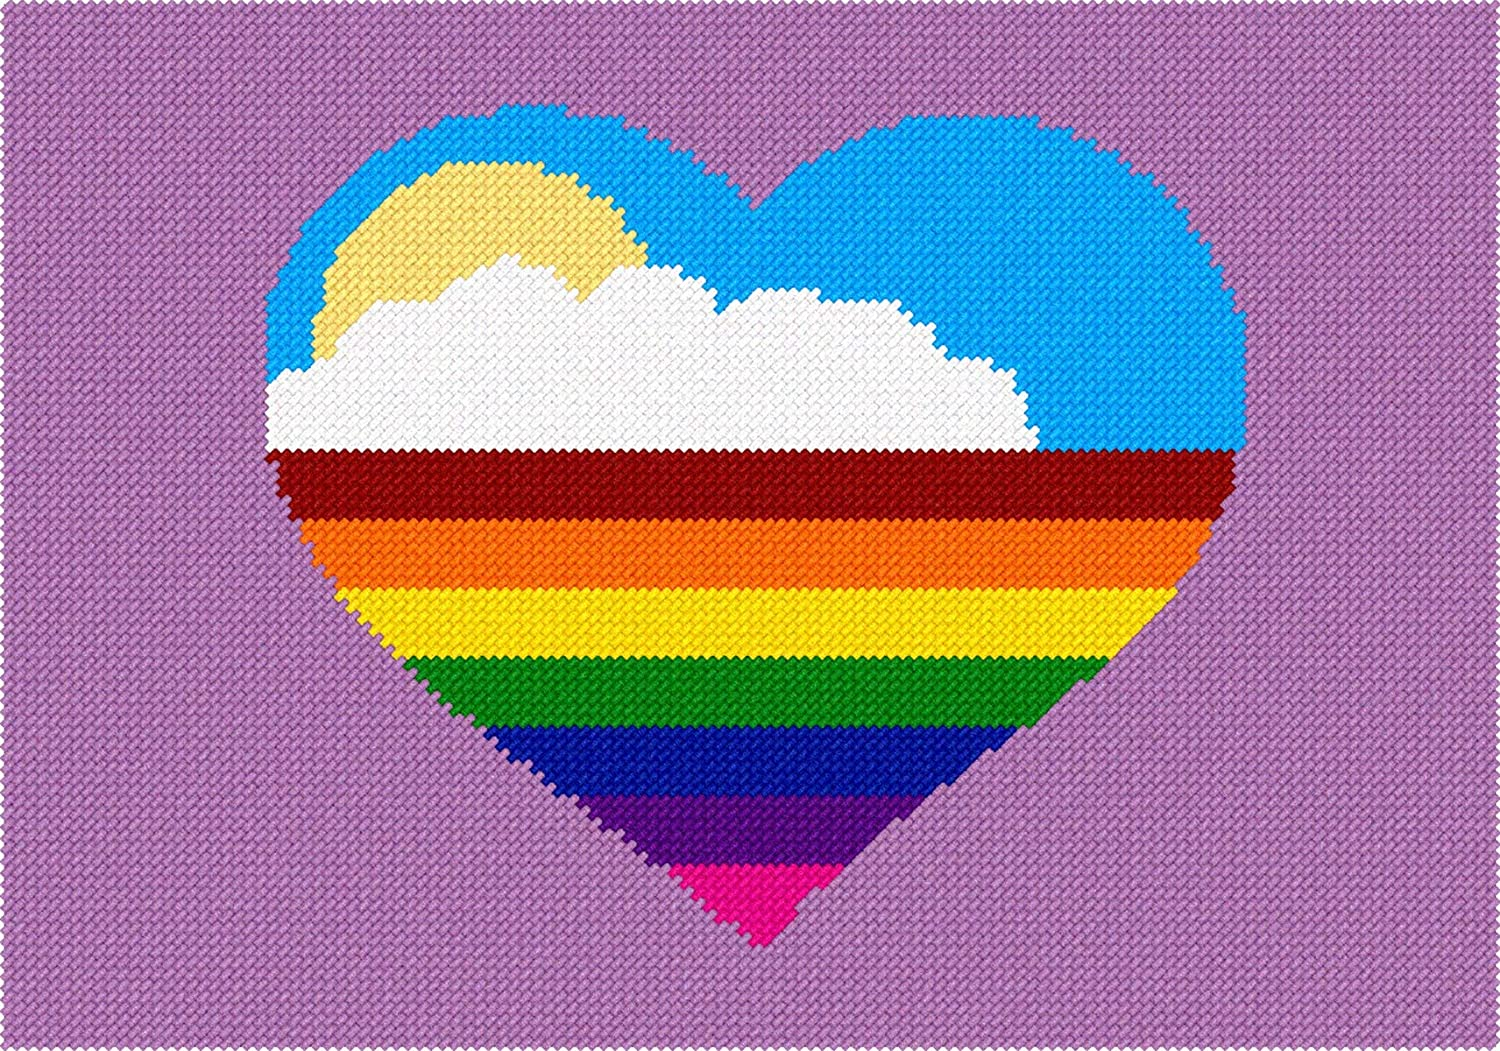 Pepita Heart Rainbow Needlepoint Kit Pepita Needlepoint